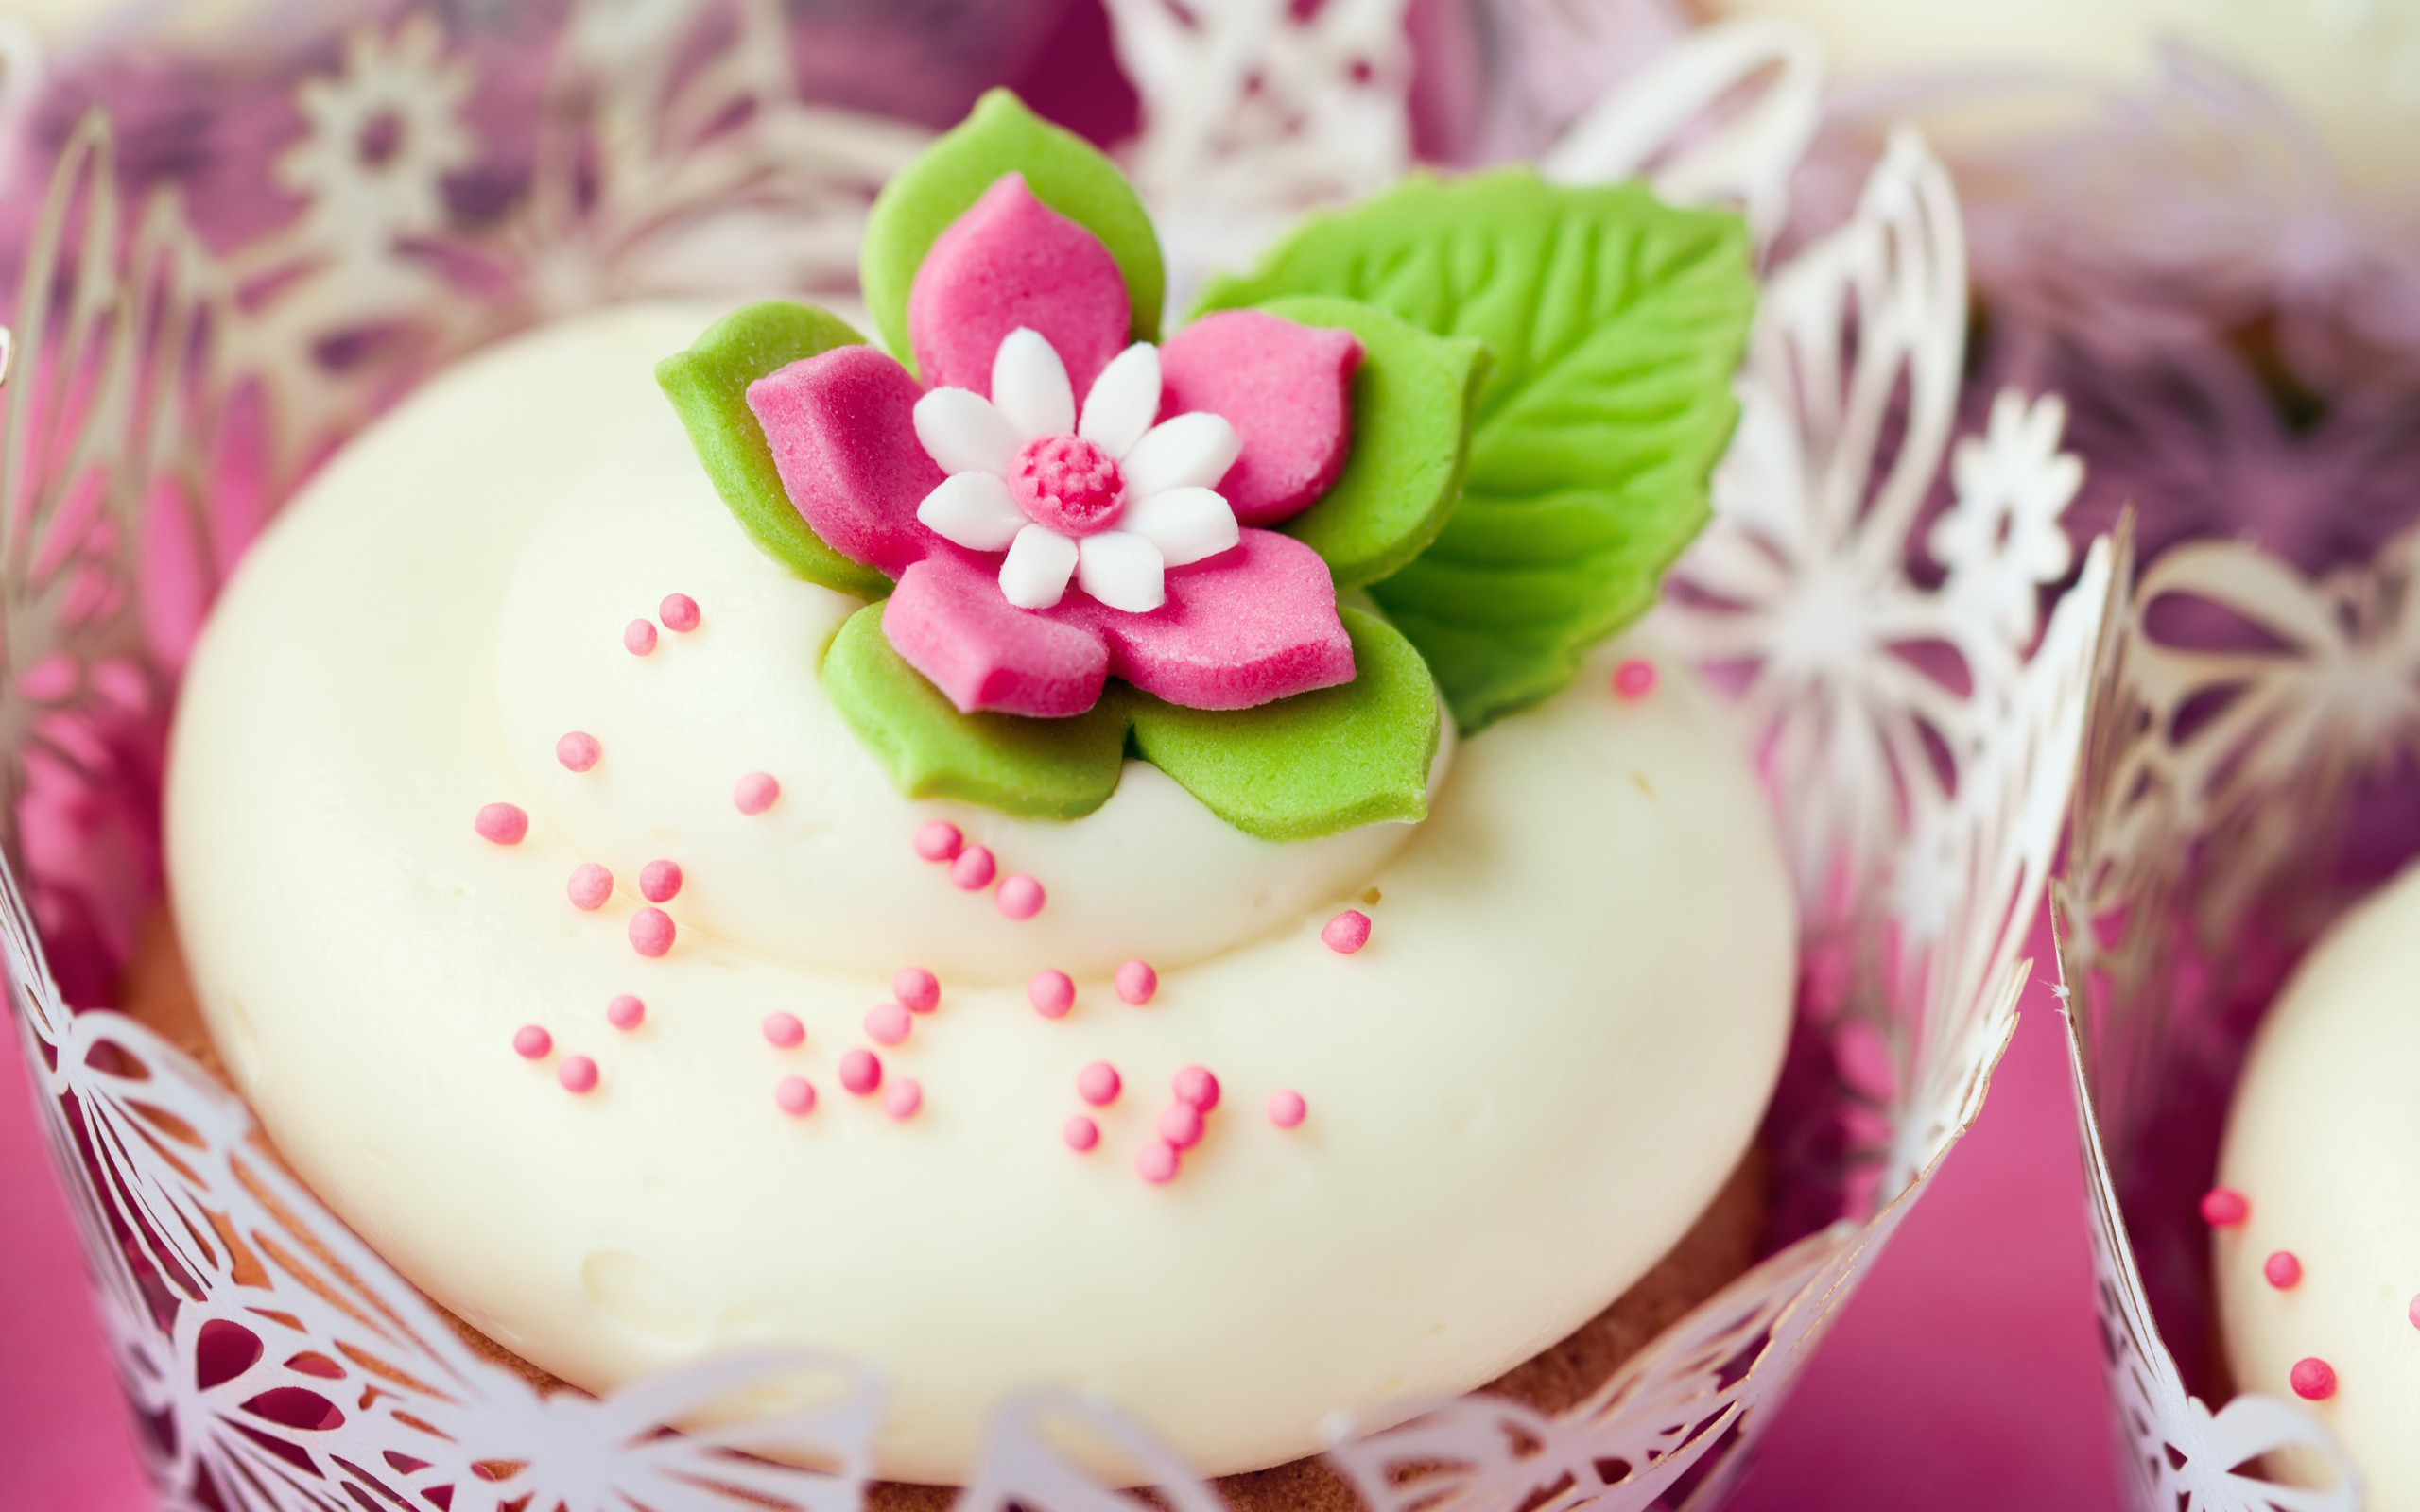 Res: 2560x1600, Best 25 Cute desserts ideas on Pinterest | Cute candy, Holiday .